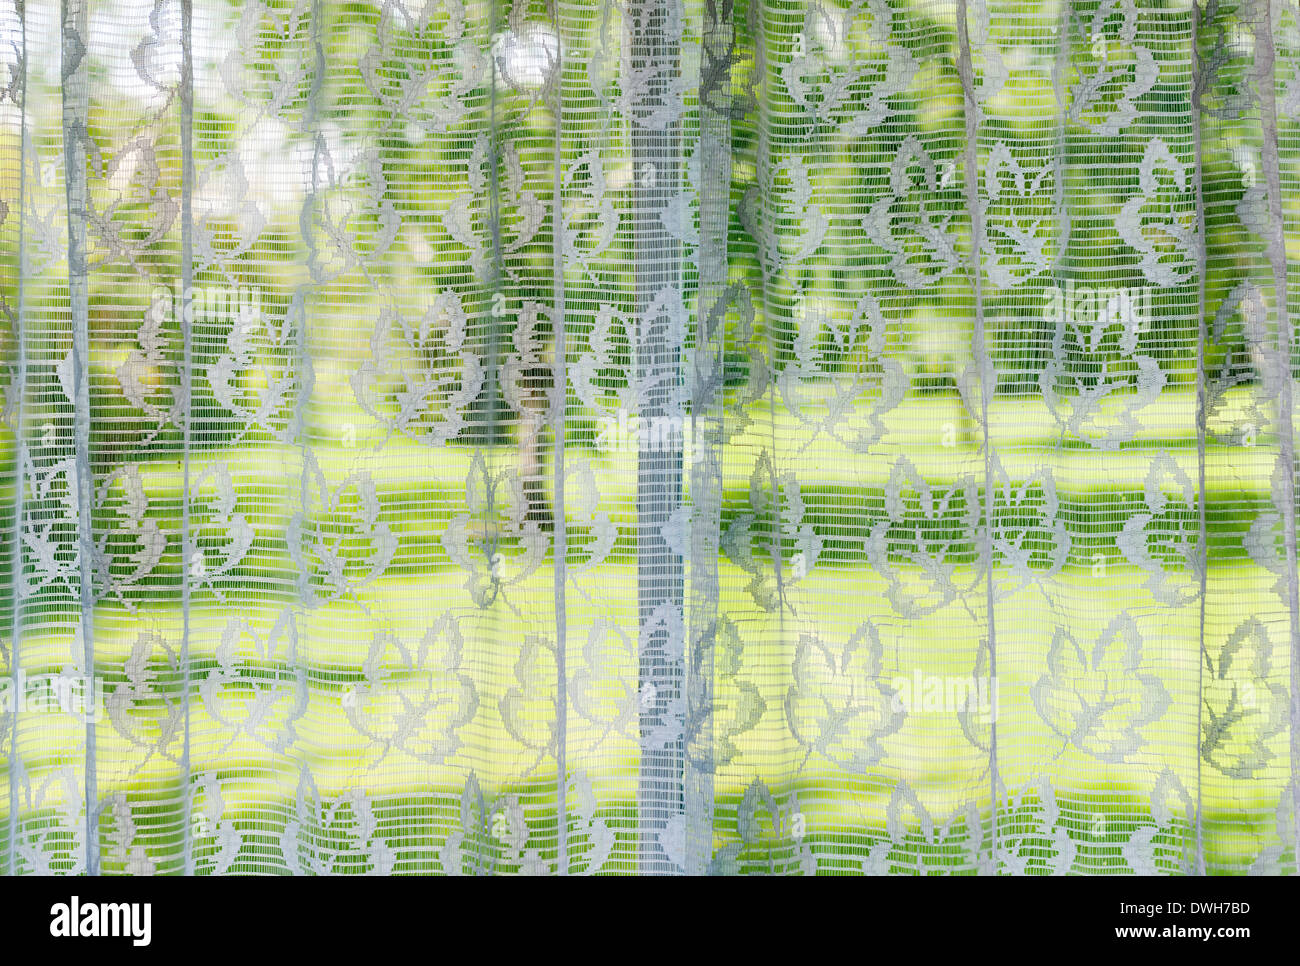 stock photo window with lace curtains looking out to green summer park